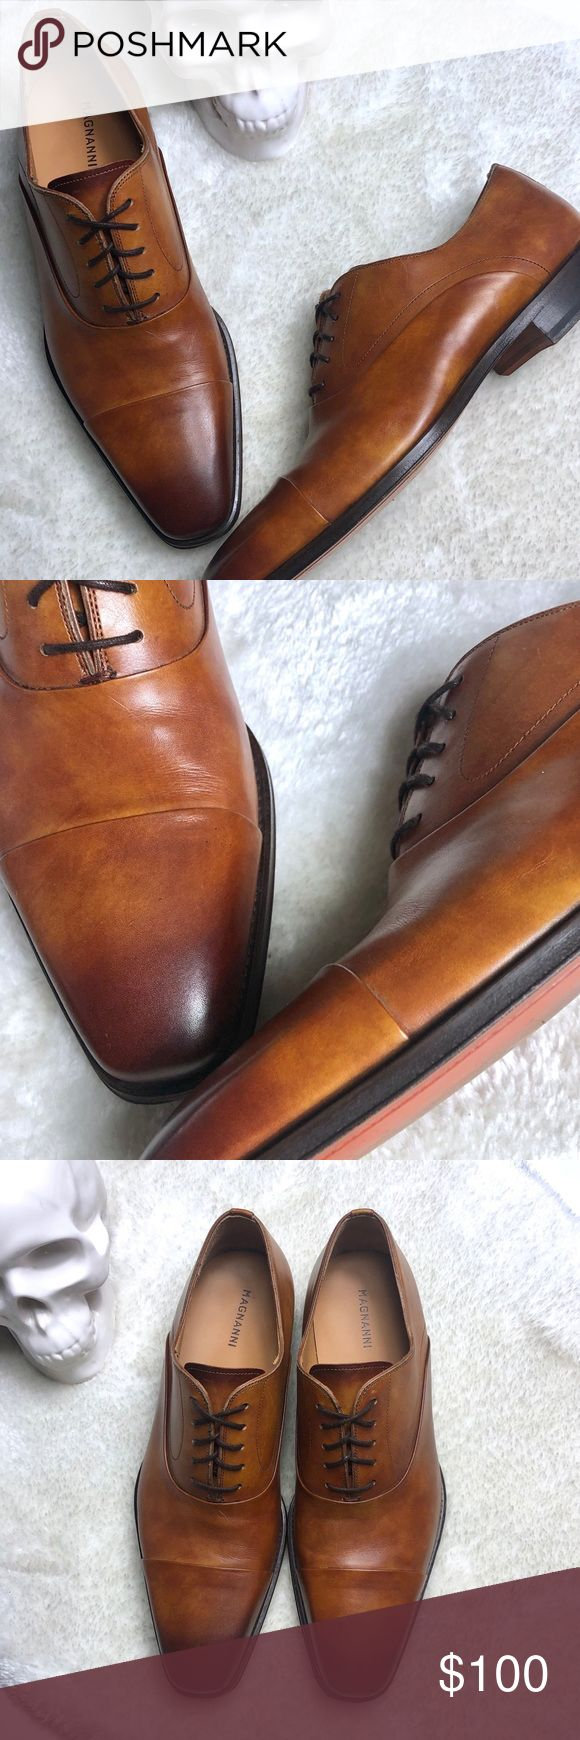 Magnanni | Saffron Toe Cap Oxfords Size 9 Magnanni | Saffron Toe Cap Oxfords  Si...